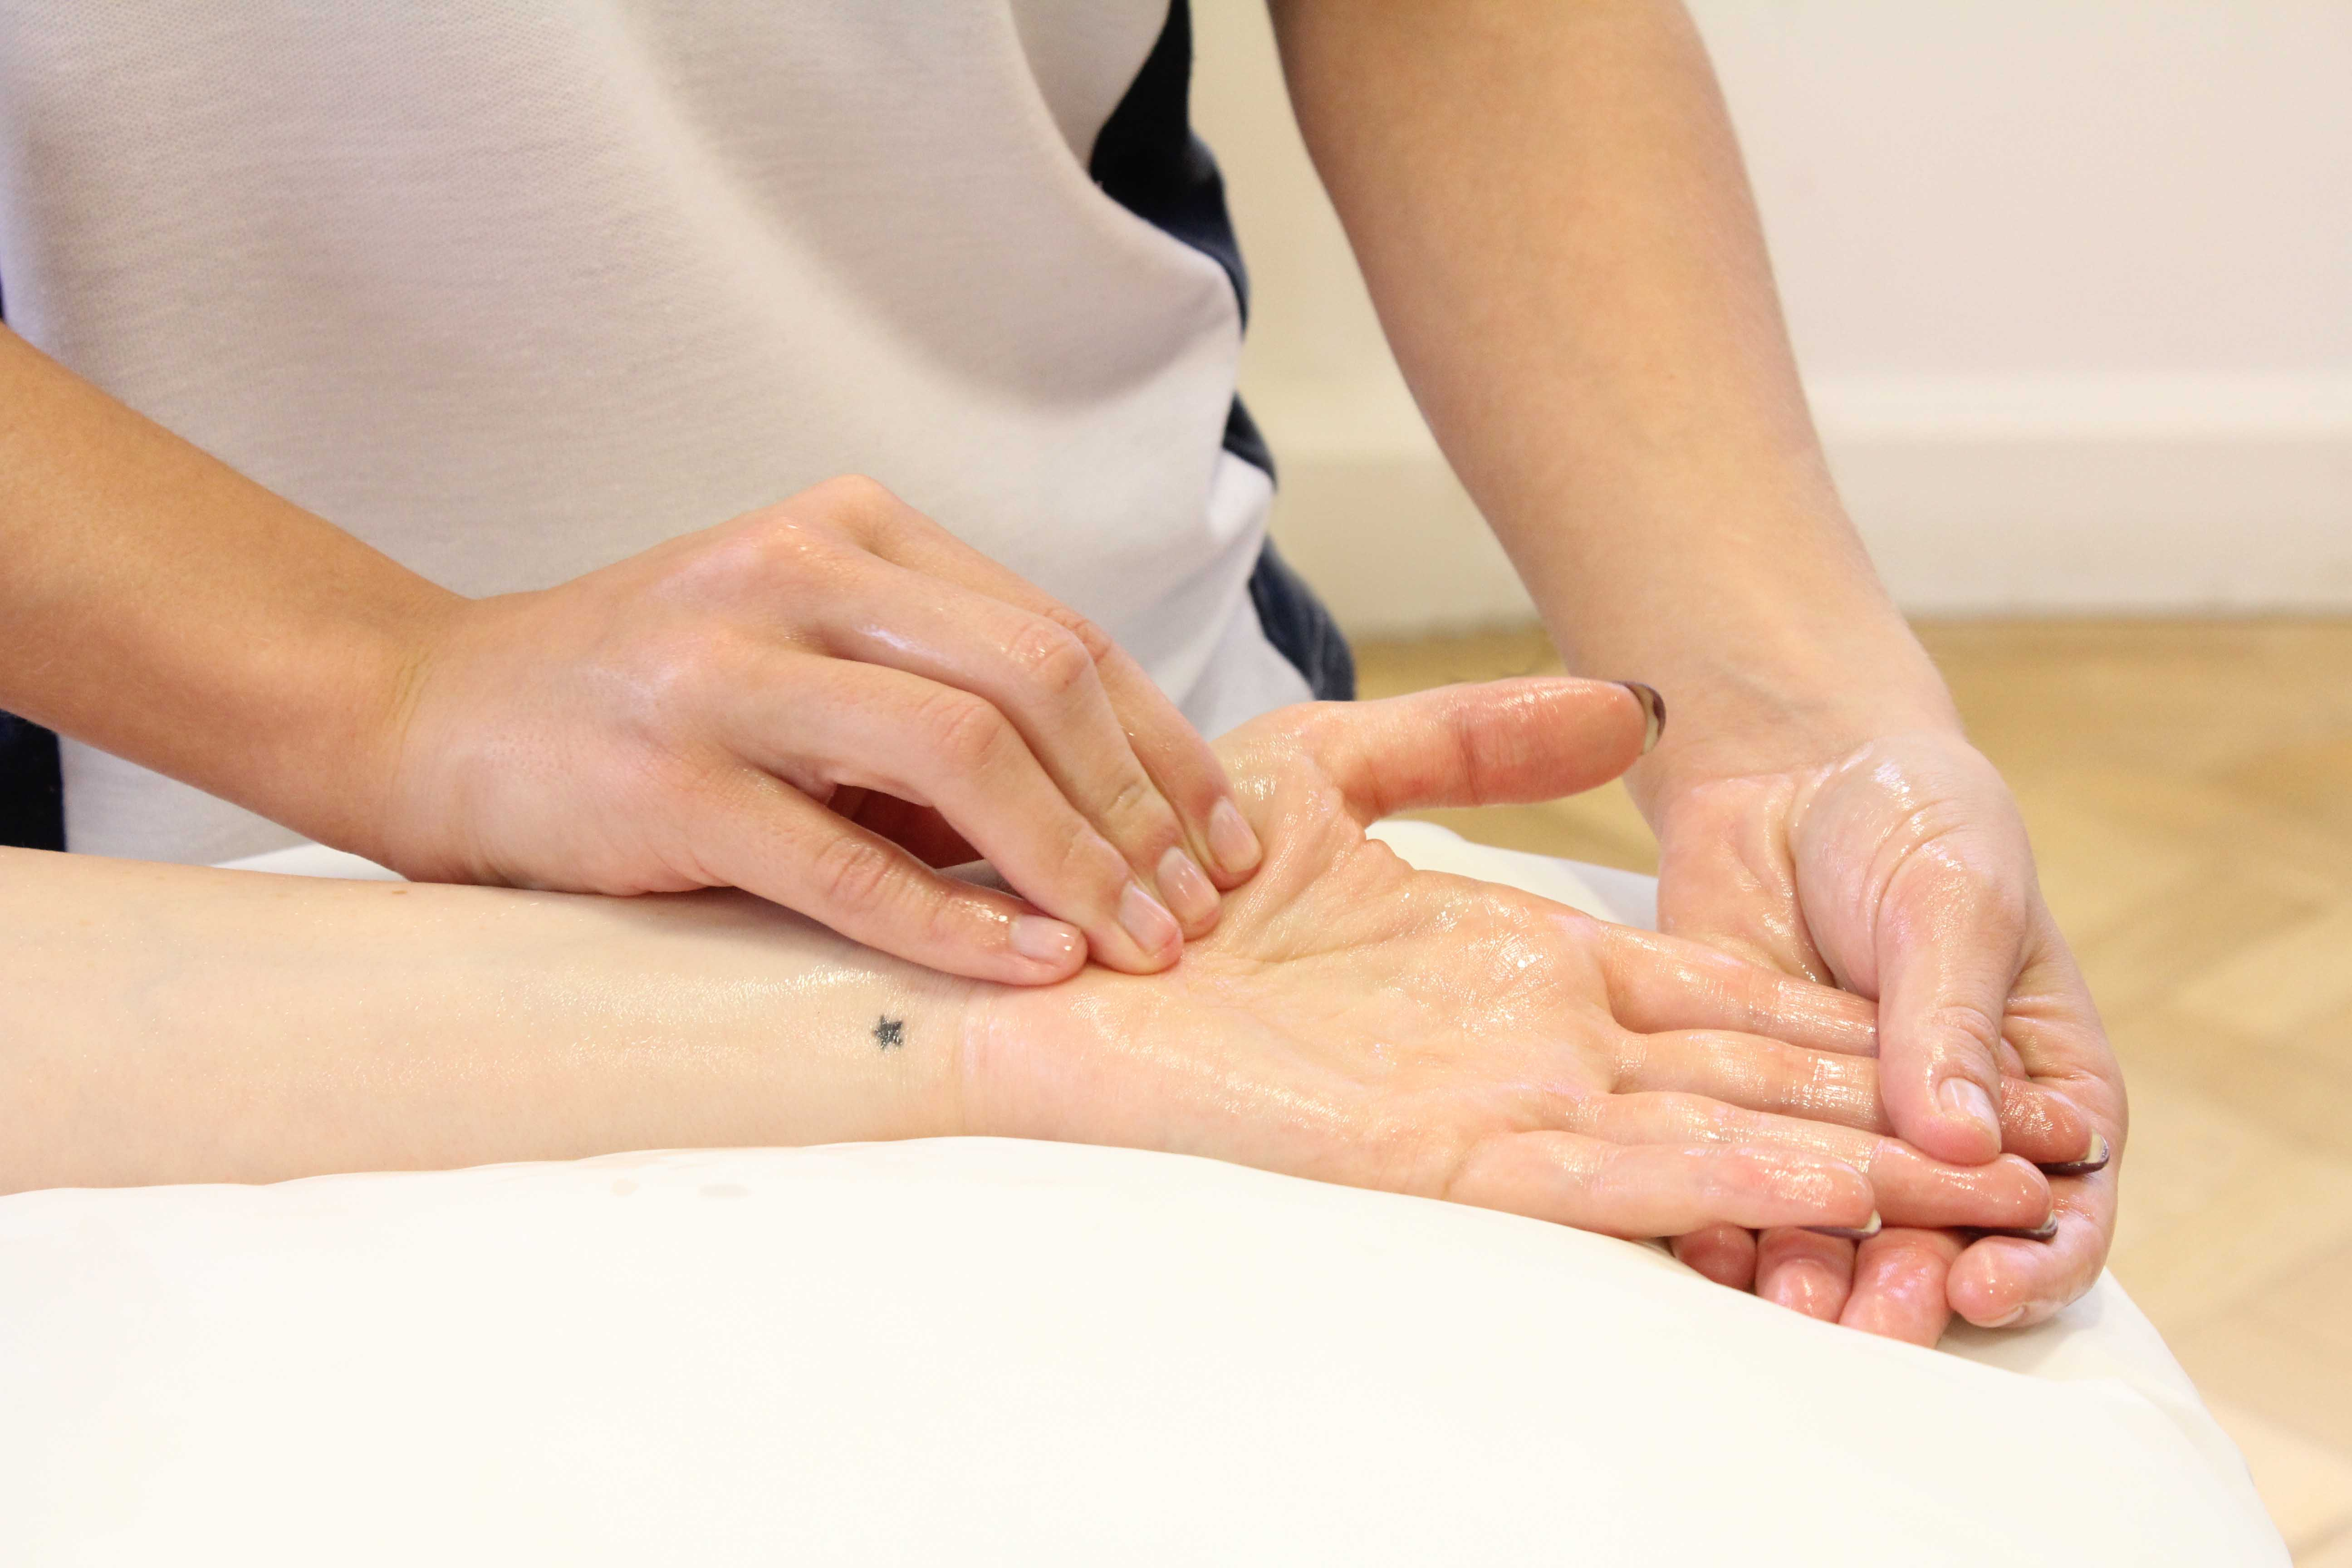 Soft tissue massage and mobilisation of the carpal bones and the surrounding connective tissues